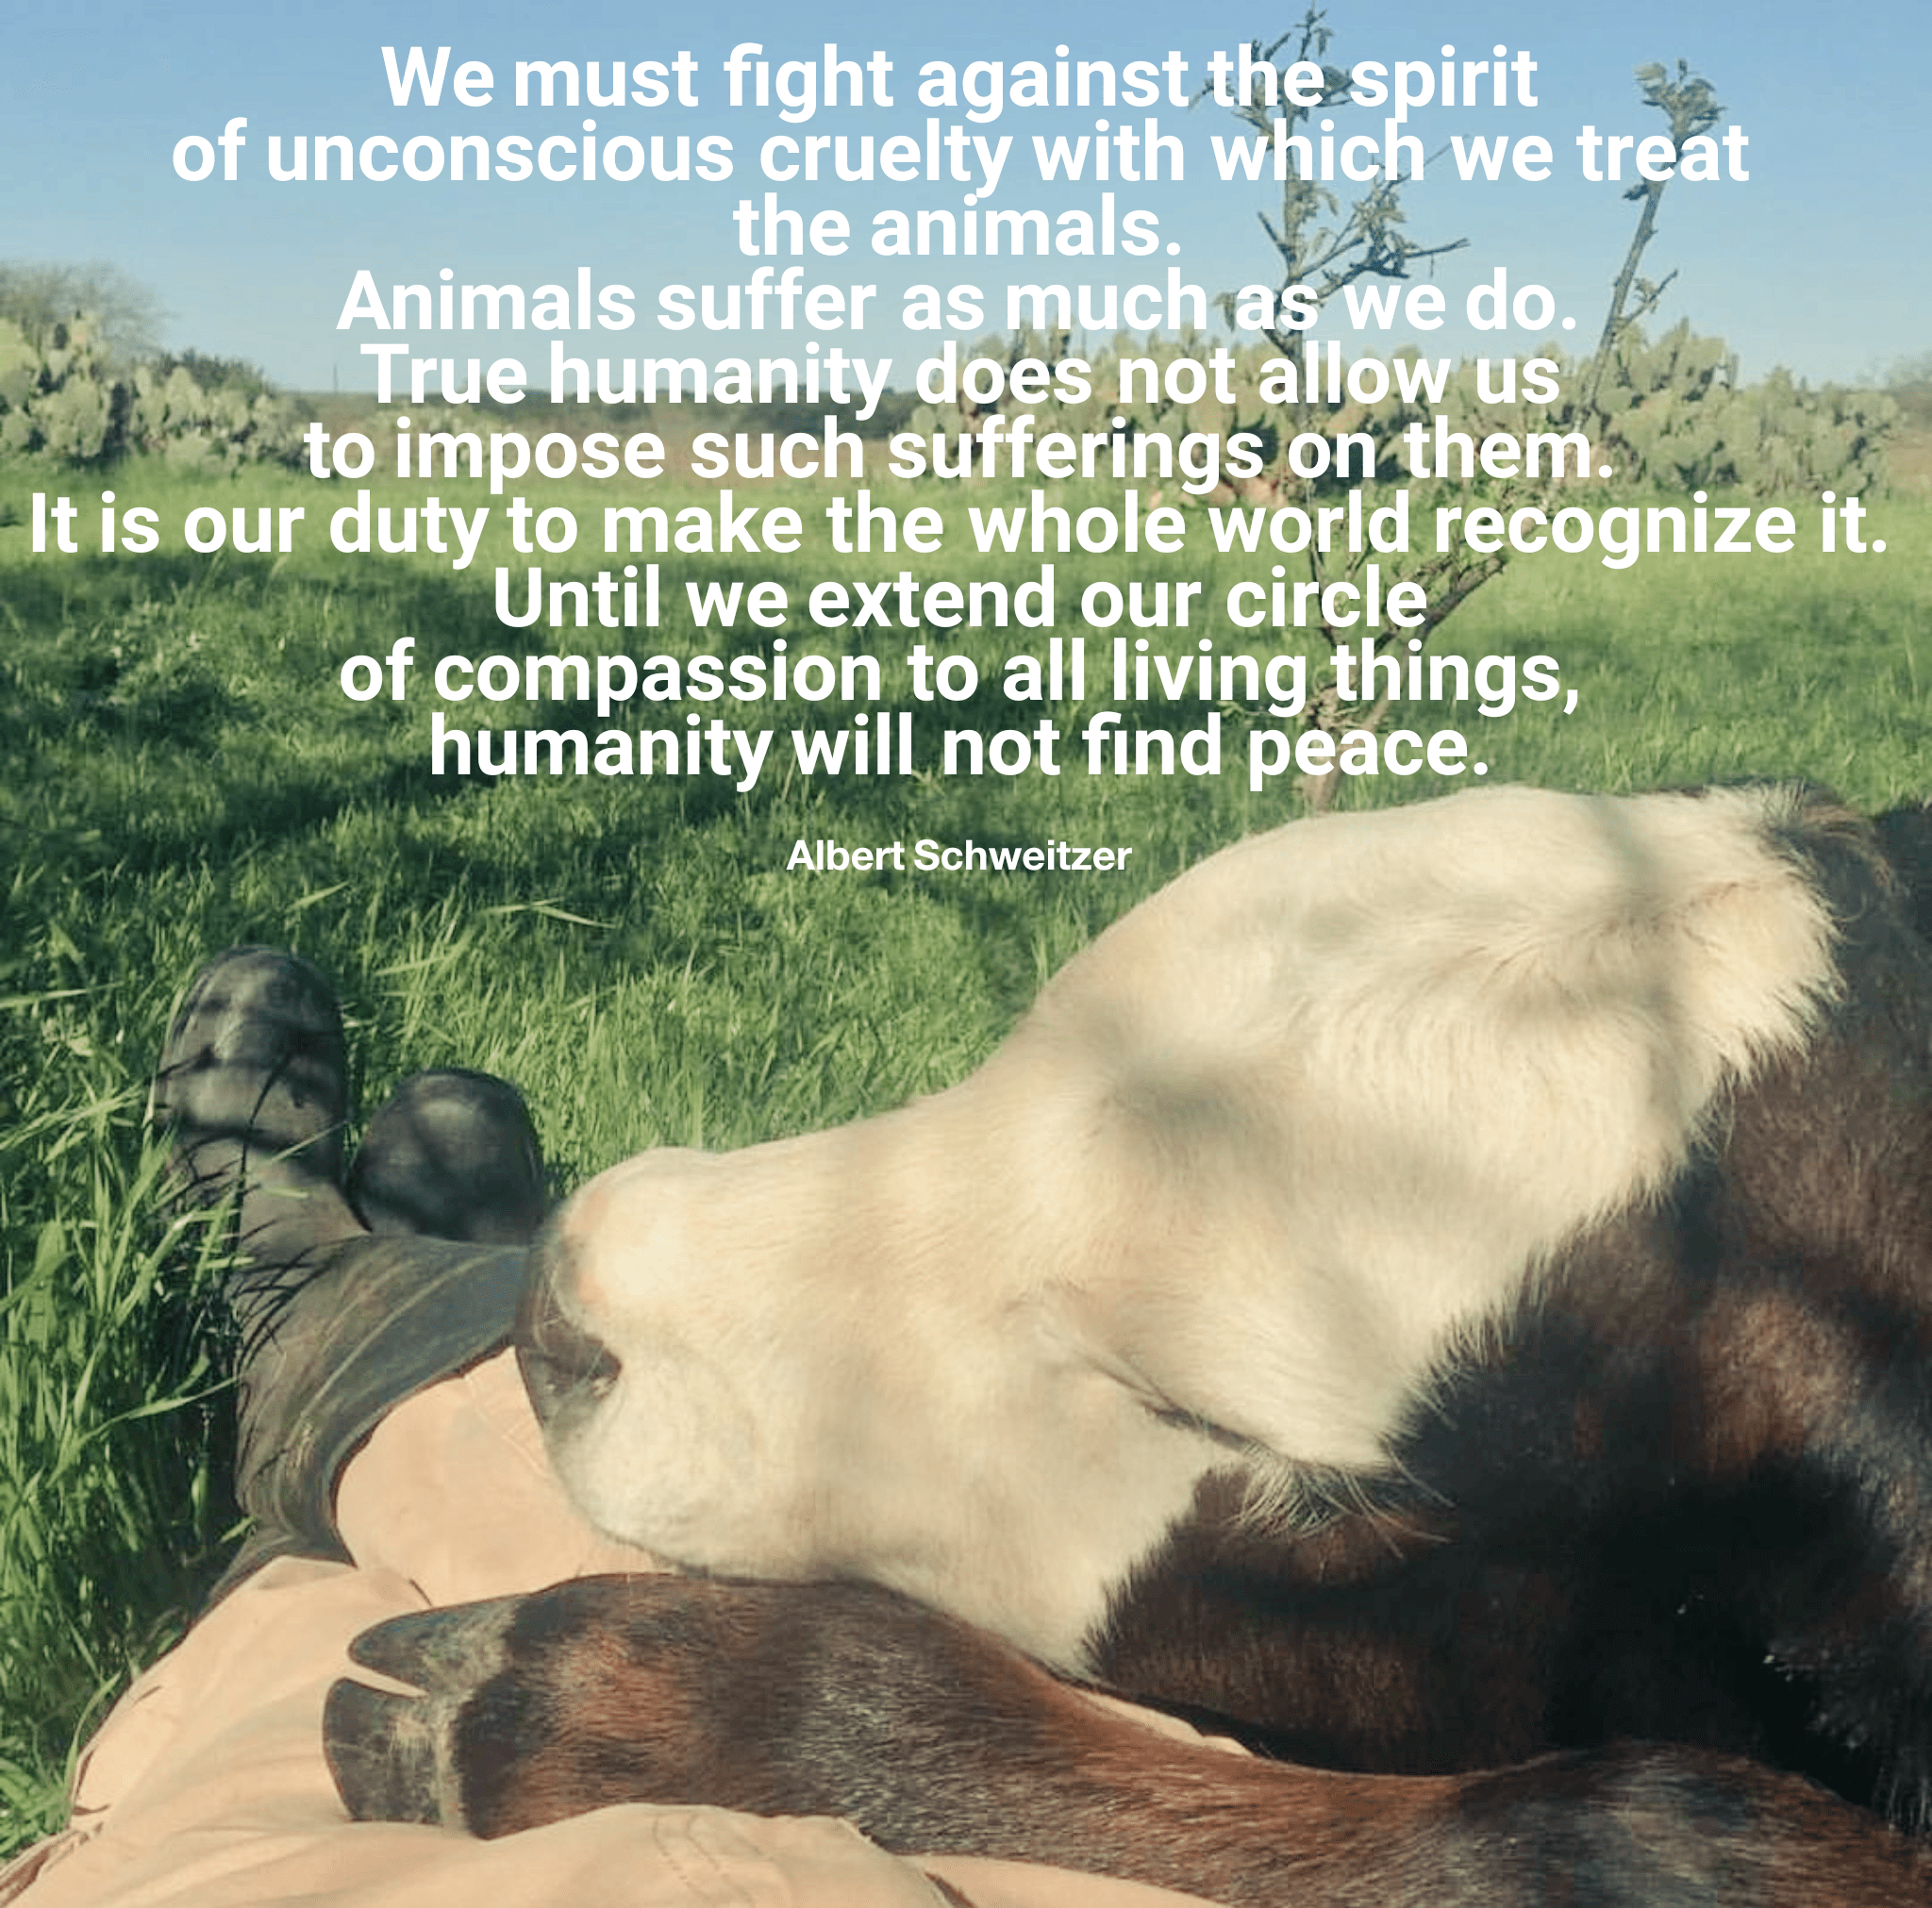 """We must fight against the spirit of unconscious curelty with which we treat the animals…"" -Albert Schweitzer [2048×2023]"